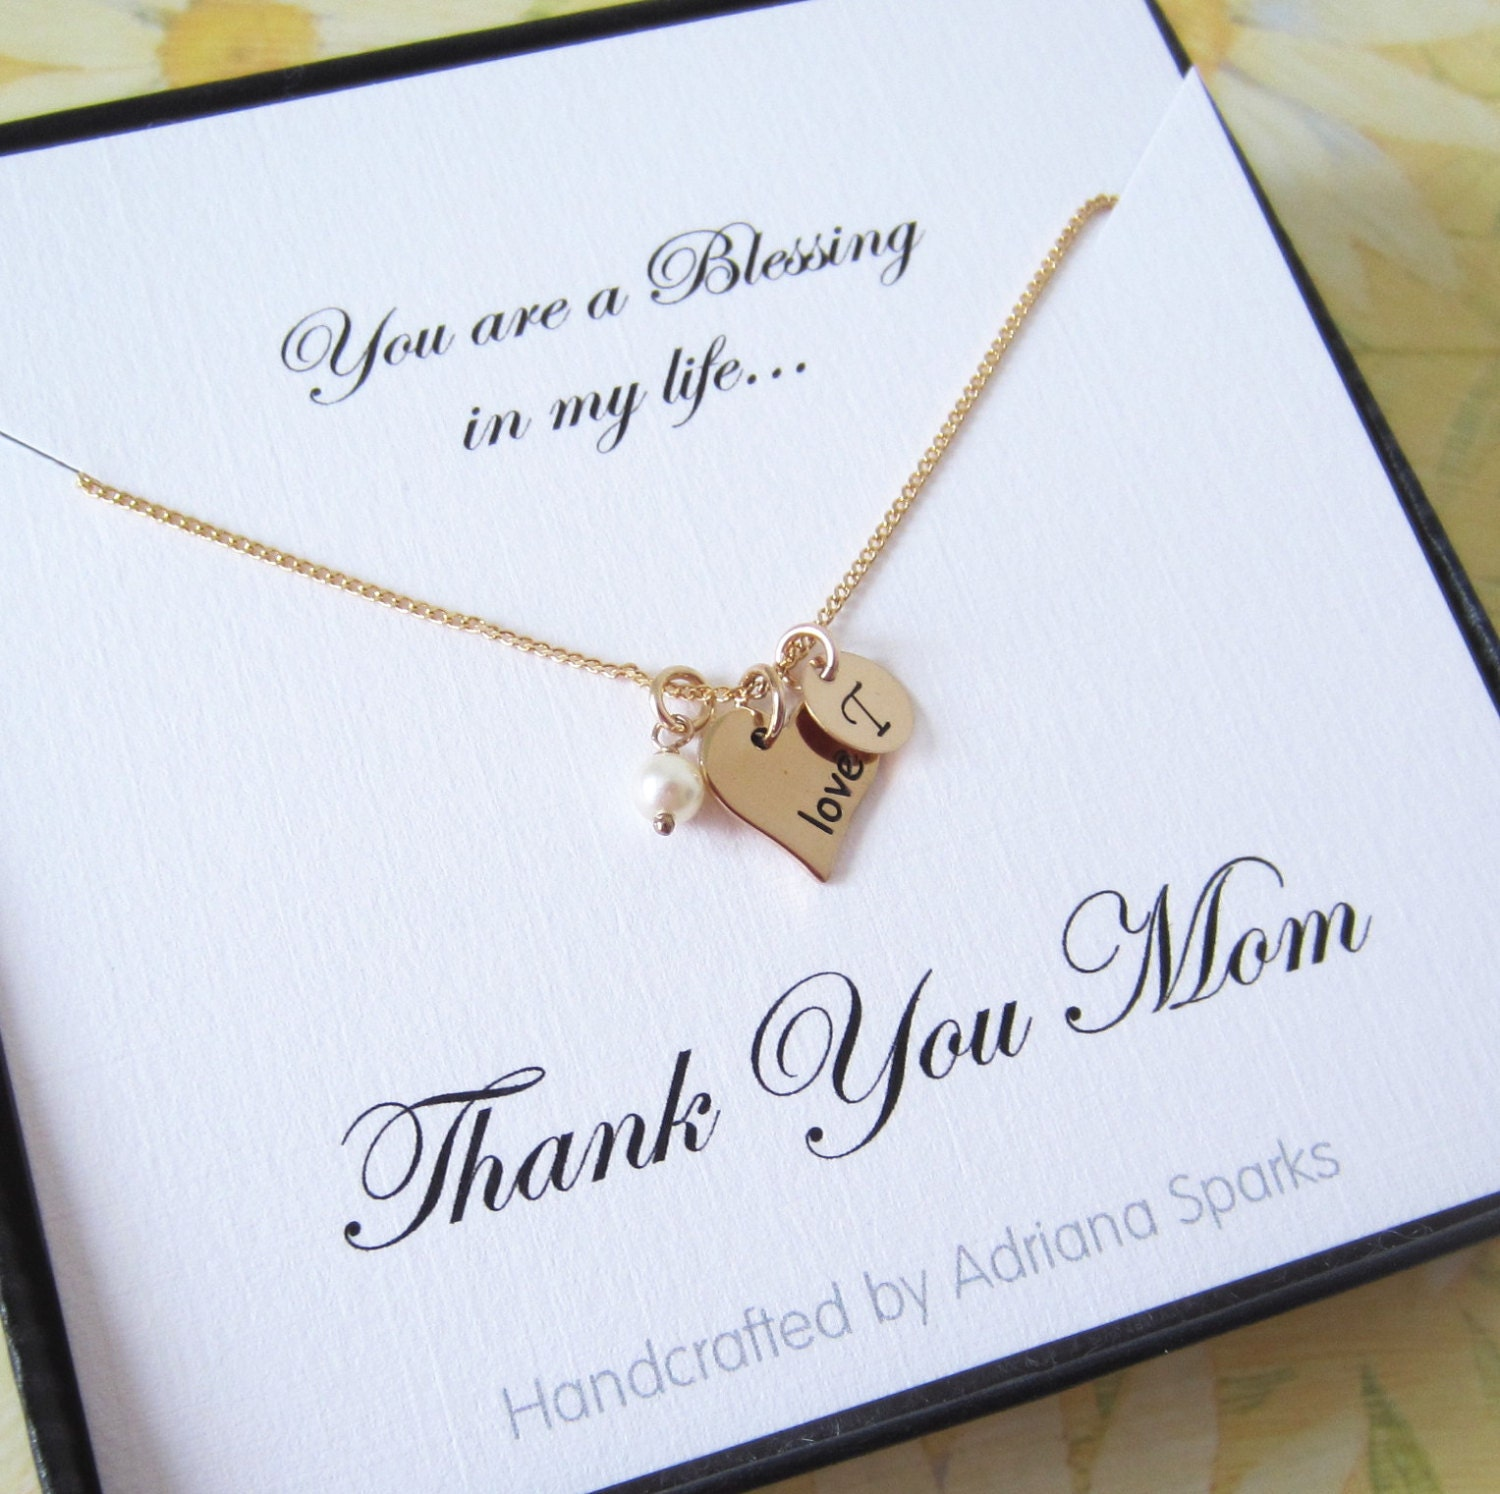 Unique Mother Of The Bride Gifts: Personalized Mother Of The Bride Or Groom Gift Mother Of The